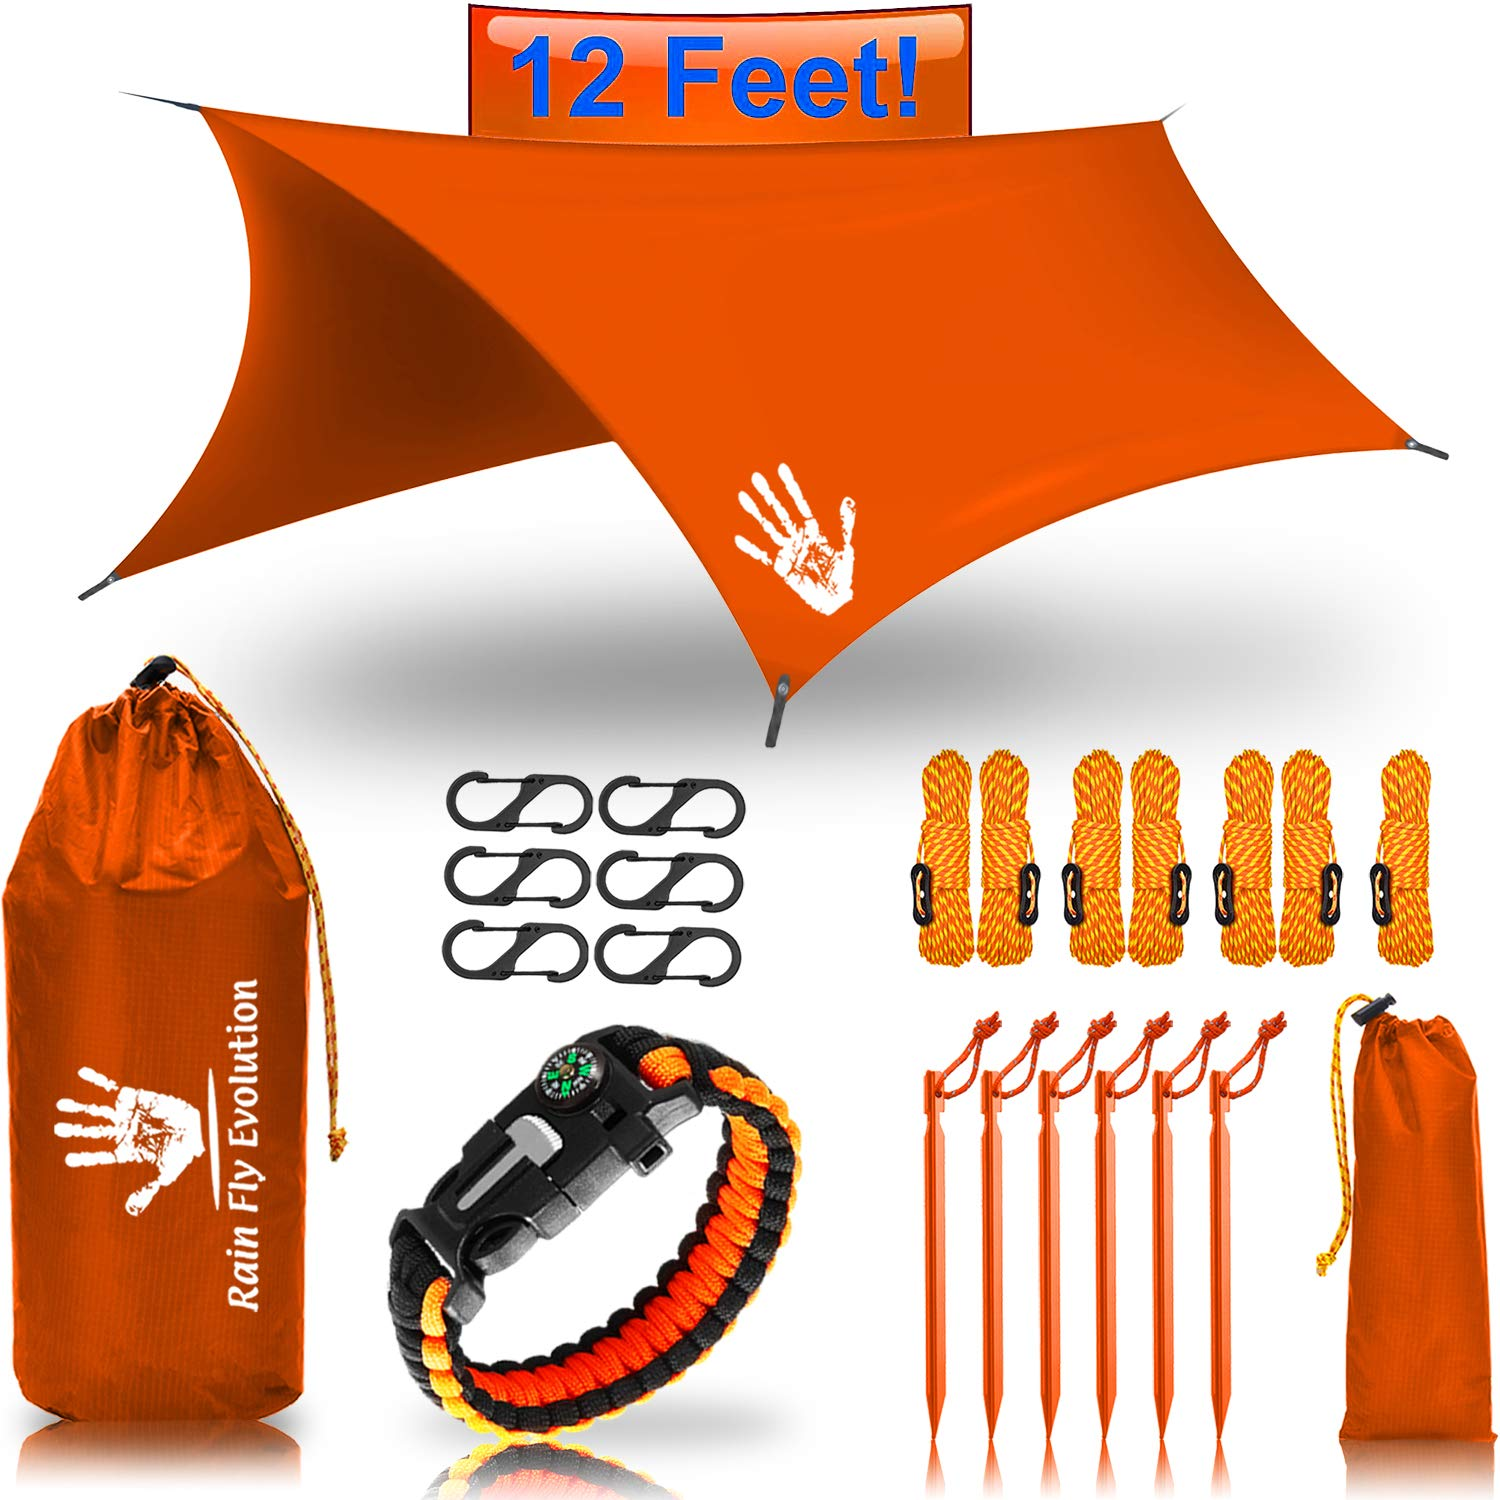 Best Choice Products 12 x 10 ft Hammock Waterproof Orange RAIN Fly - Survival Bracelet Kit - Perfect Hammock Shelter Sunshade for Camping by Rain Fly EVOLUTION